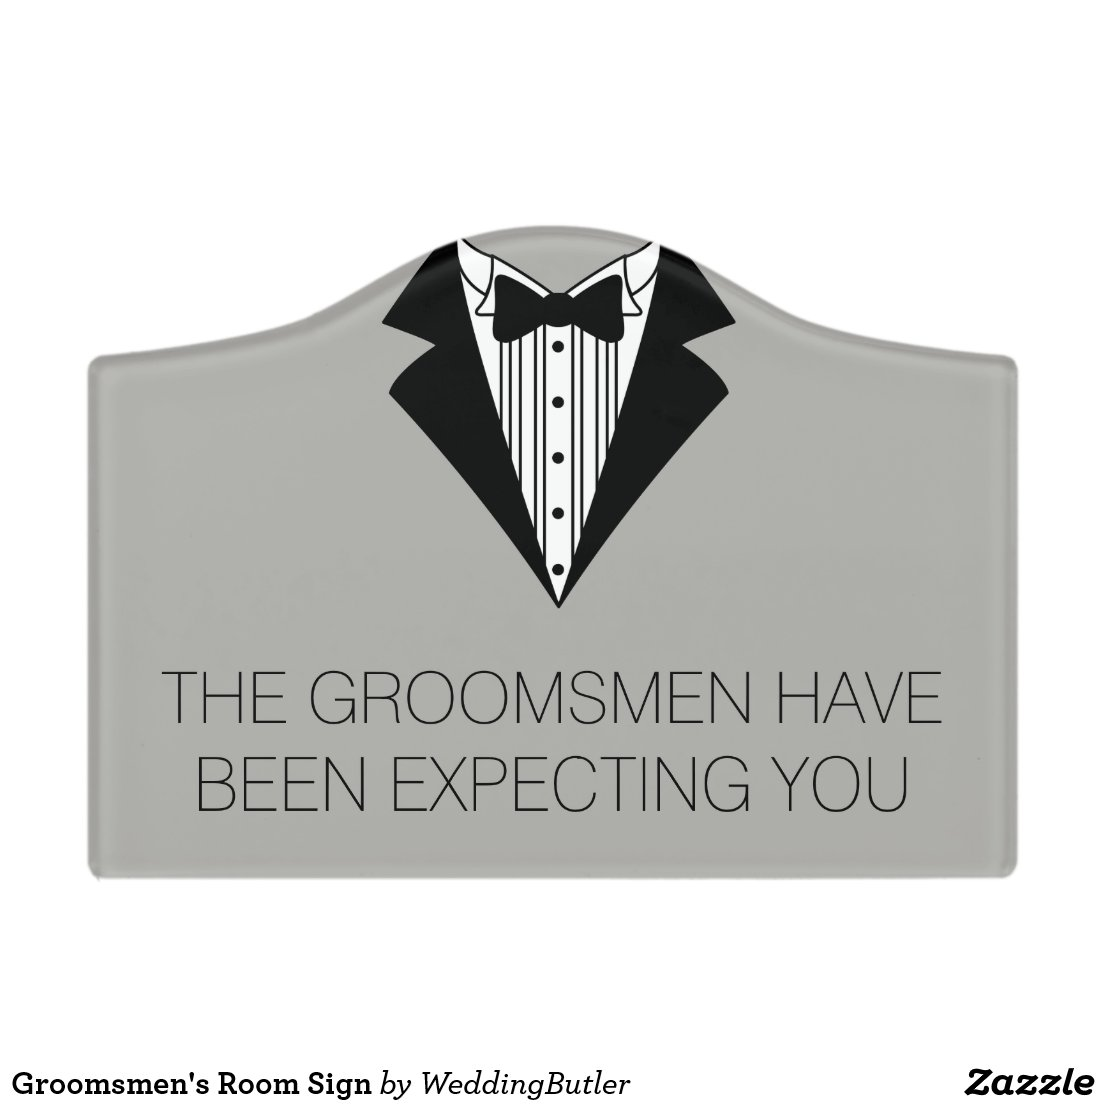 Groomsmen's Room Sign